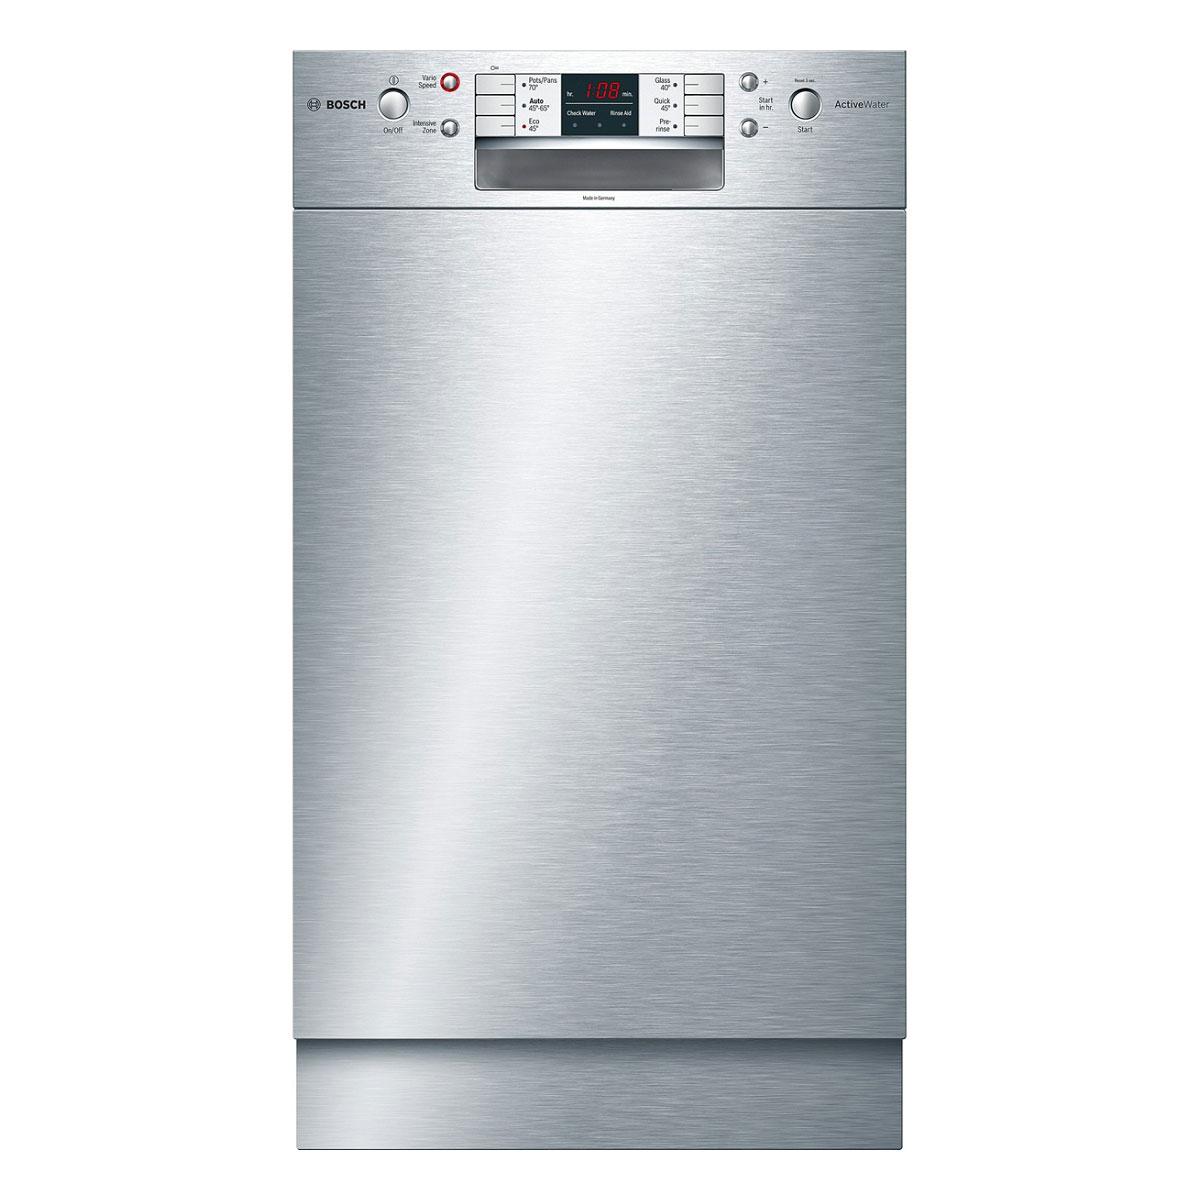 Bosch Appliances & Factory Seconds - Up to 60% Off